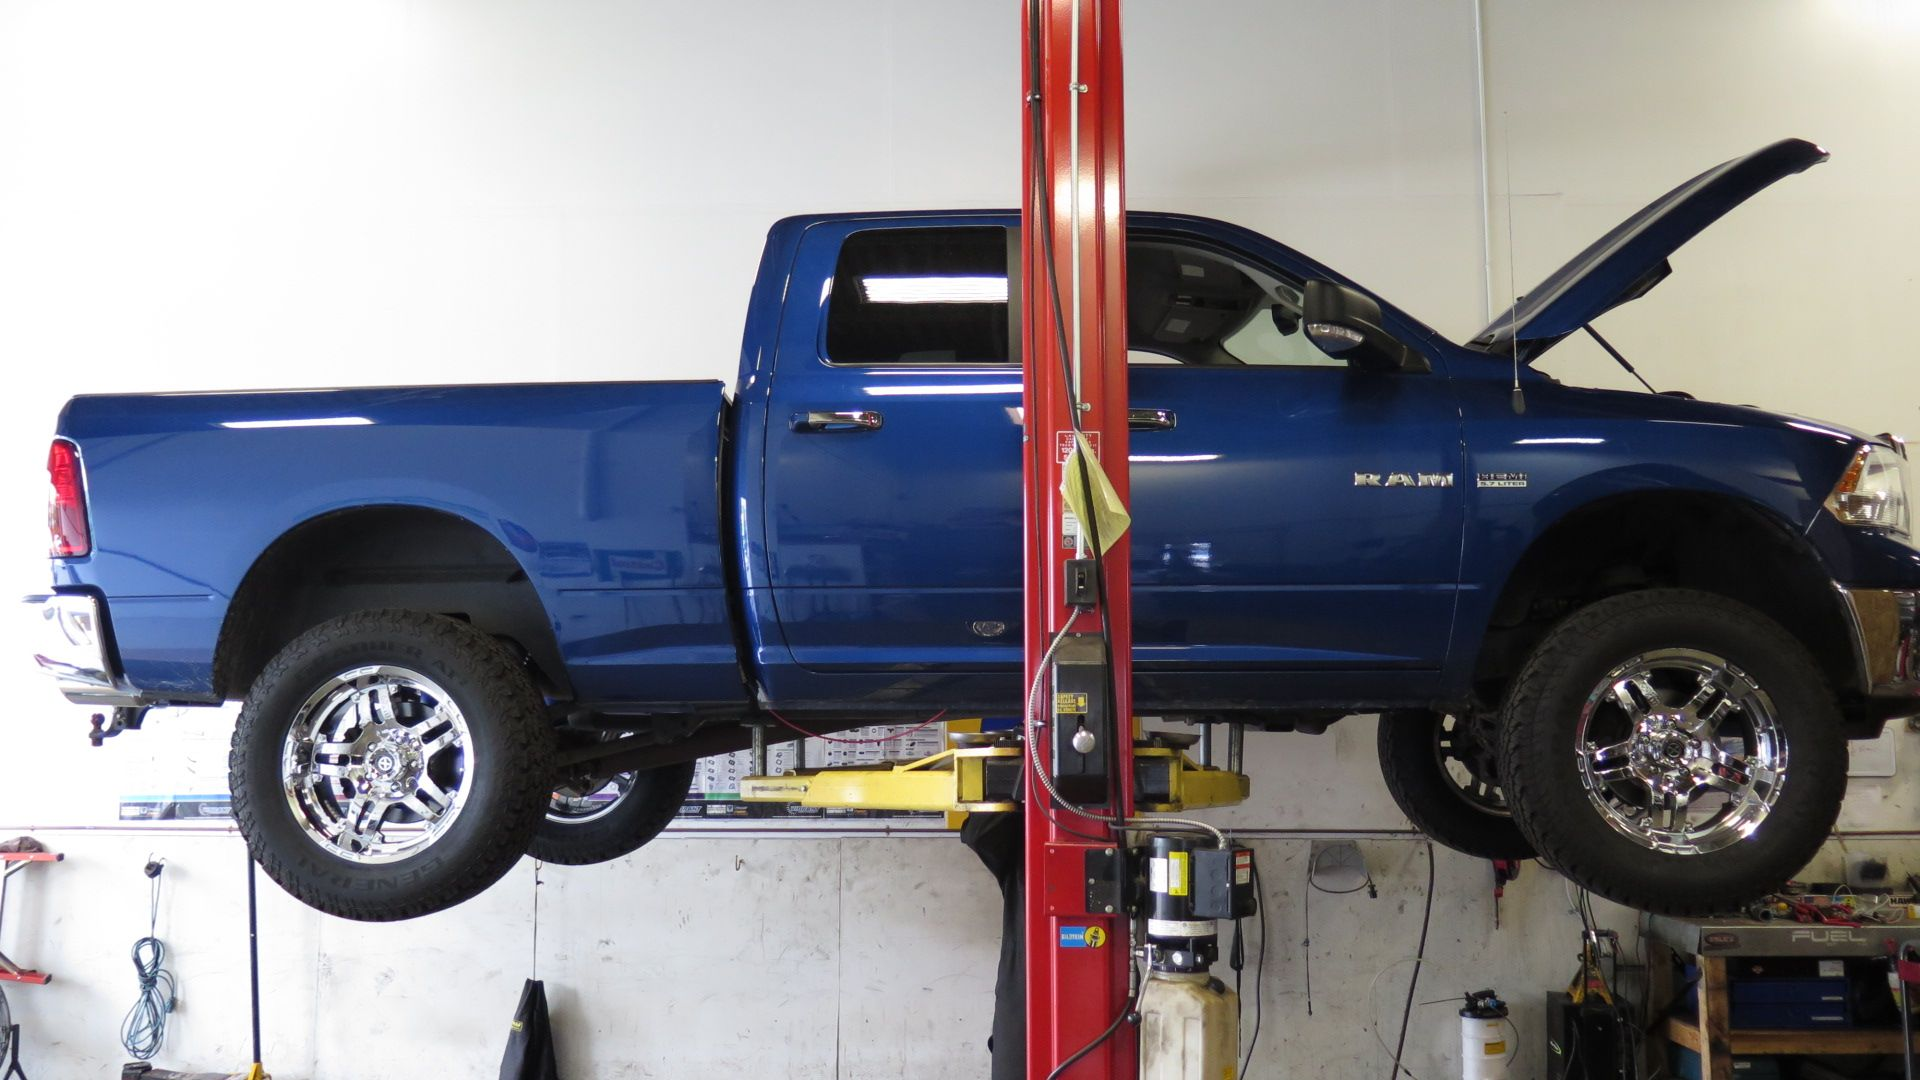 "2010 Ram 1500 2.5"" front/1.5"" rear Ready-lift lift kit Rear HD coil springs  Firestone Coilrite airbags ATX Artillery 20"" wheels 35"" General Grabber AT2  ..."